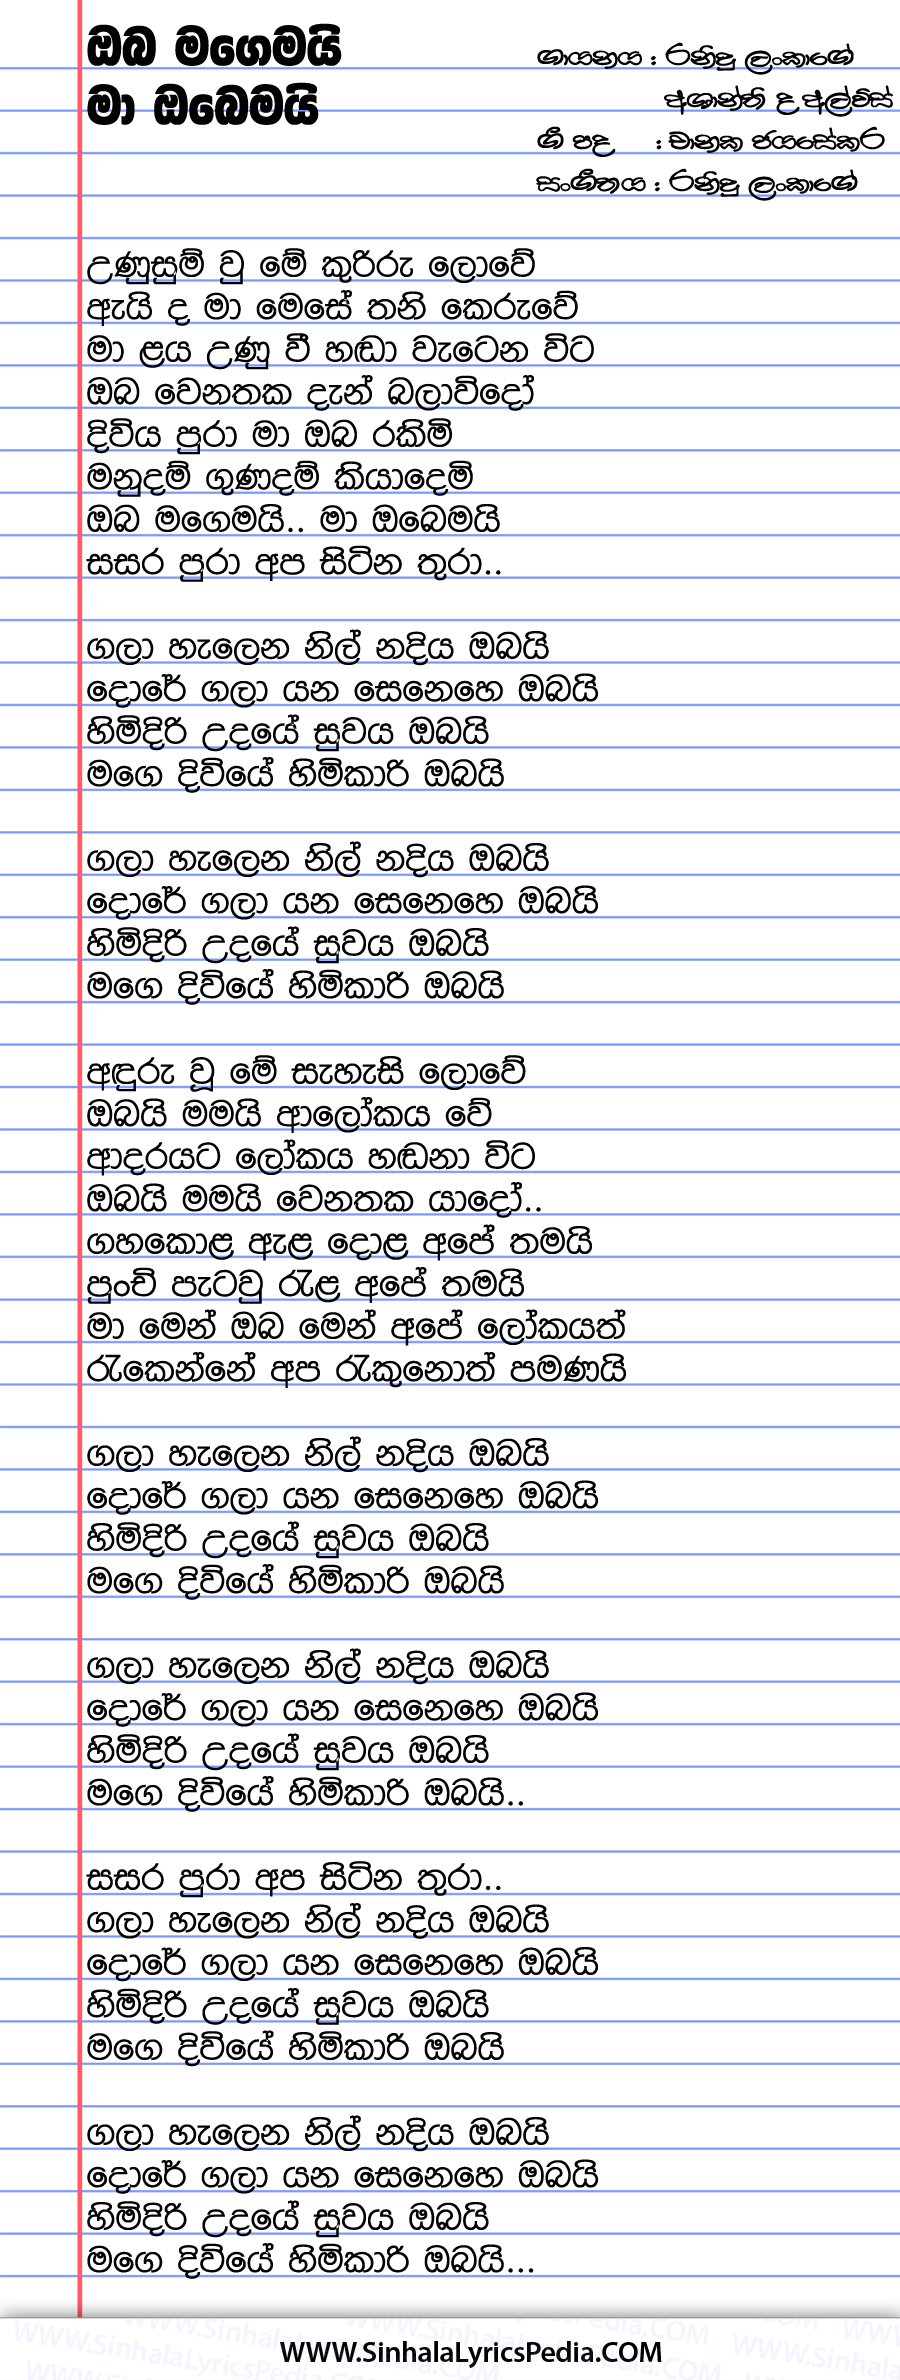 Oba Magemai Ma Obemai Song Lyrics